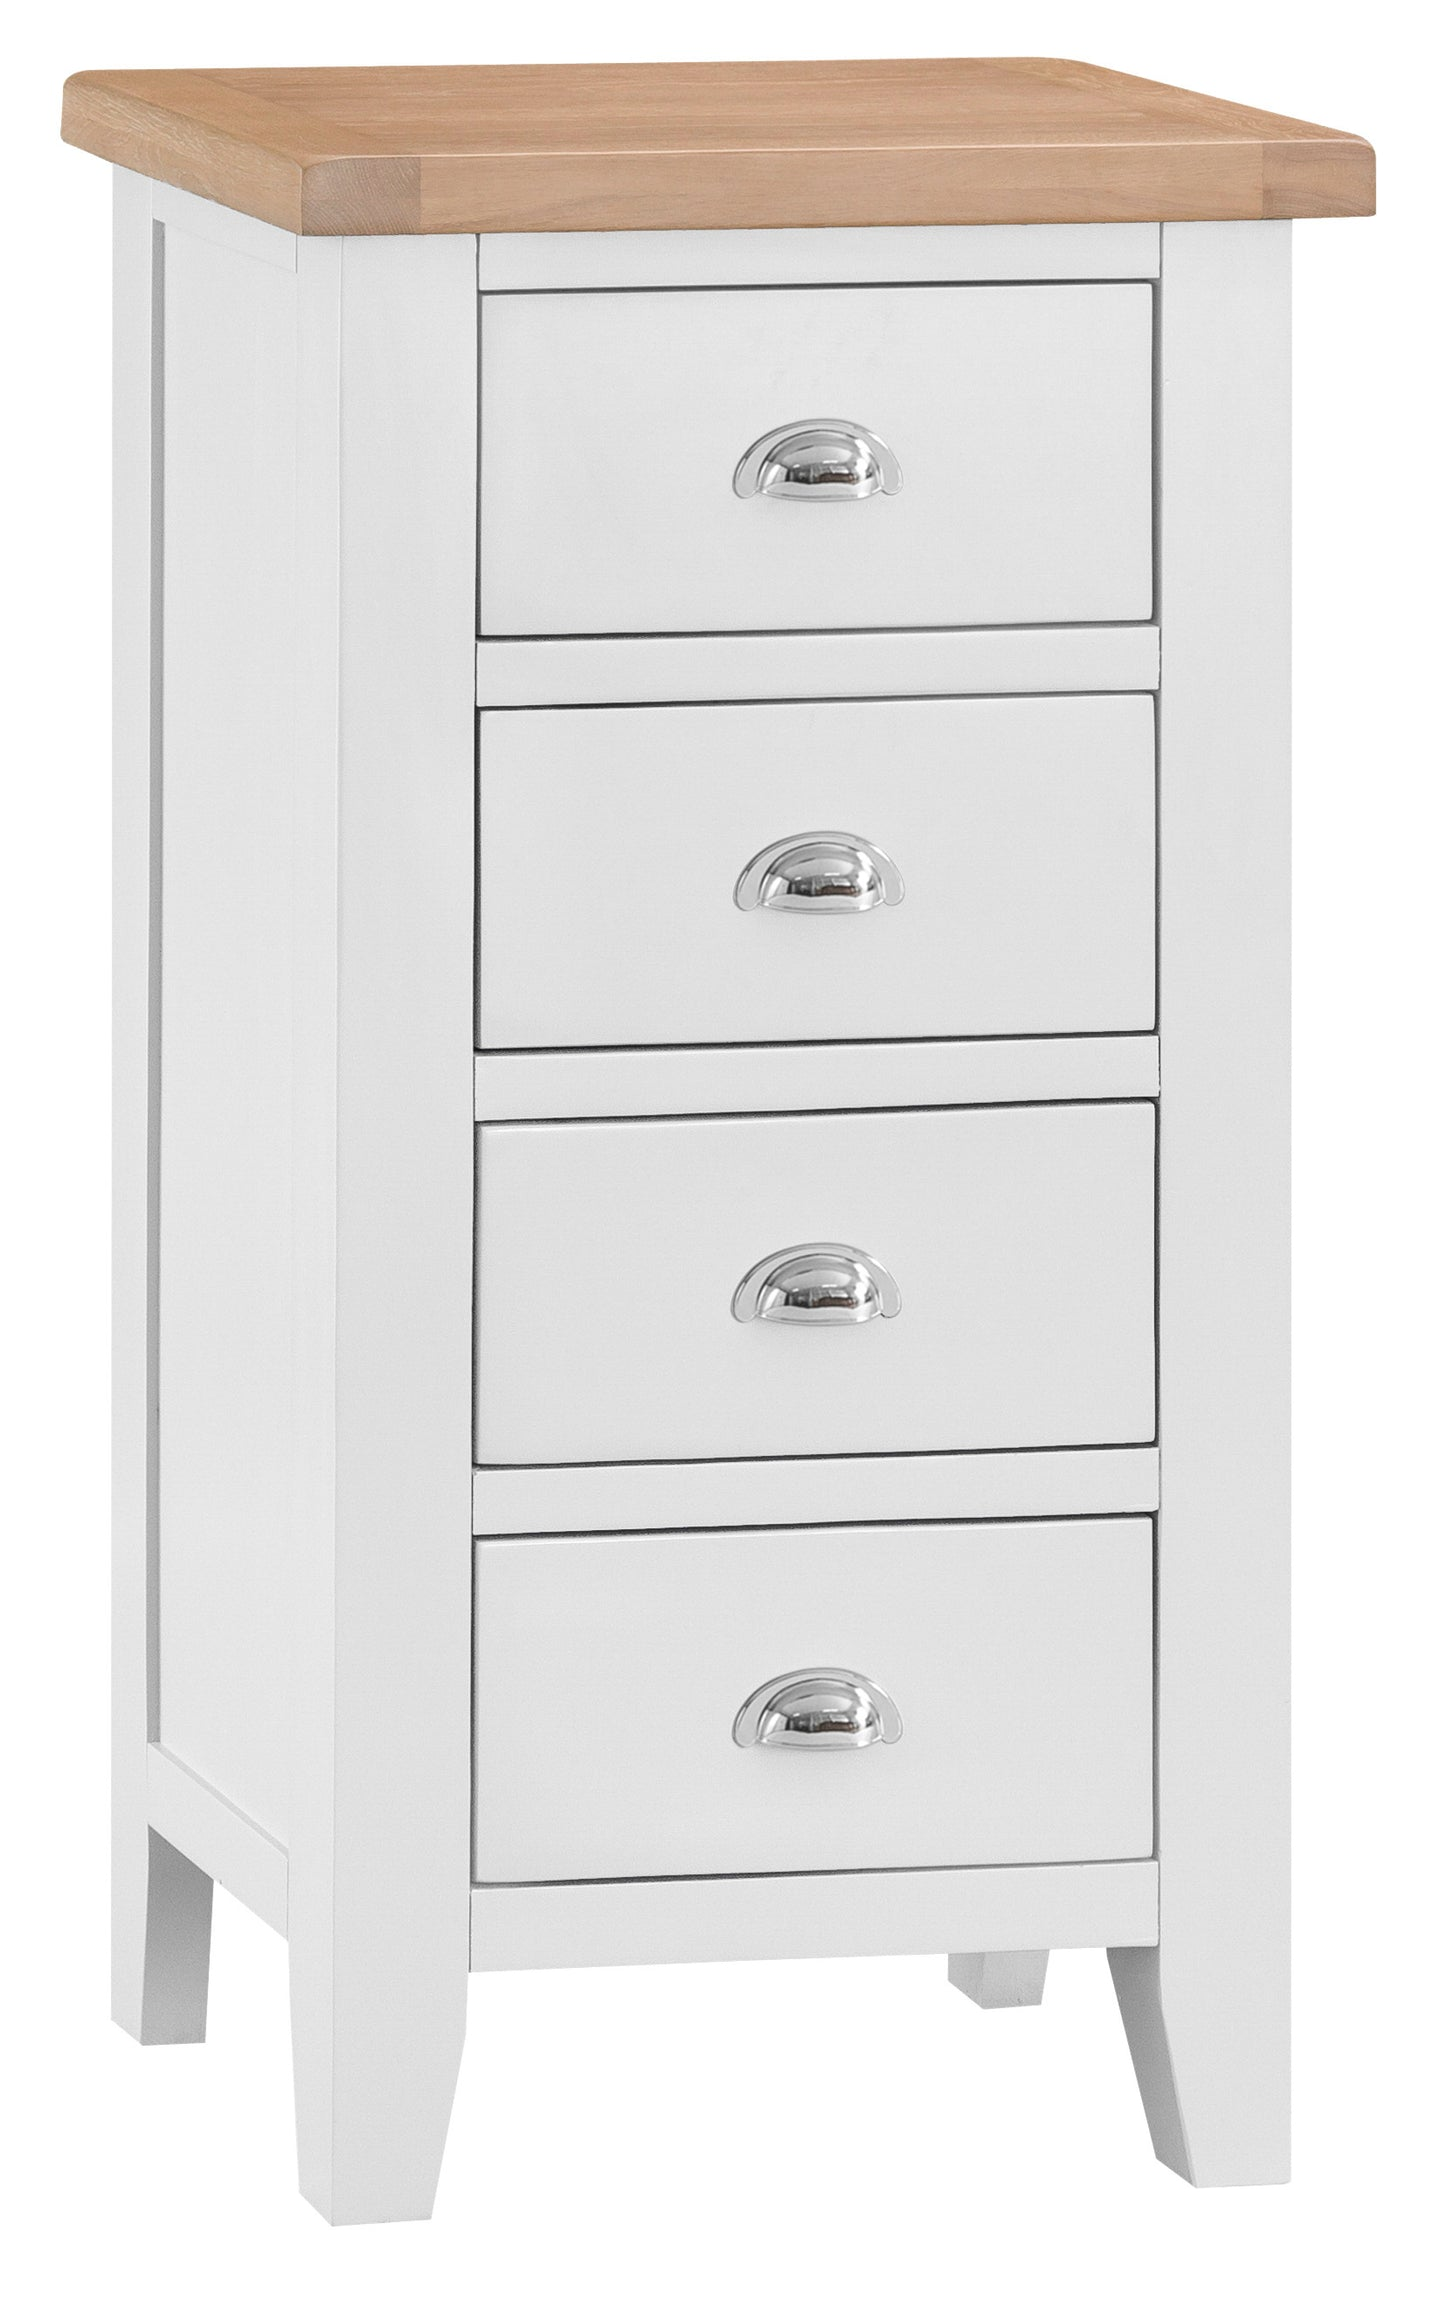 Malvern 4 Drawer Narrow Chest